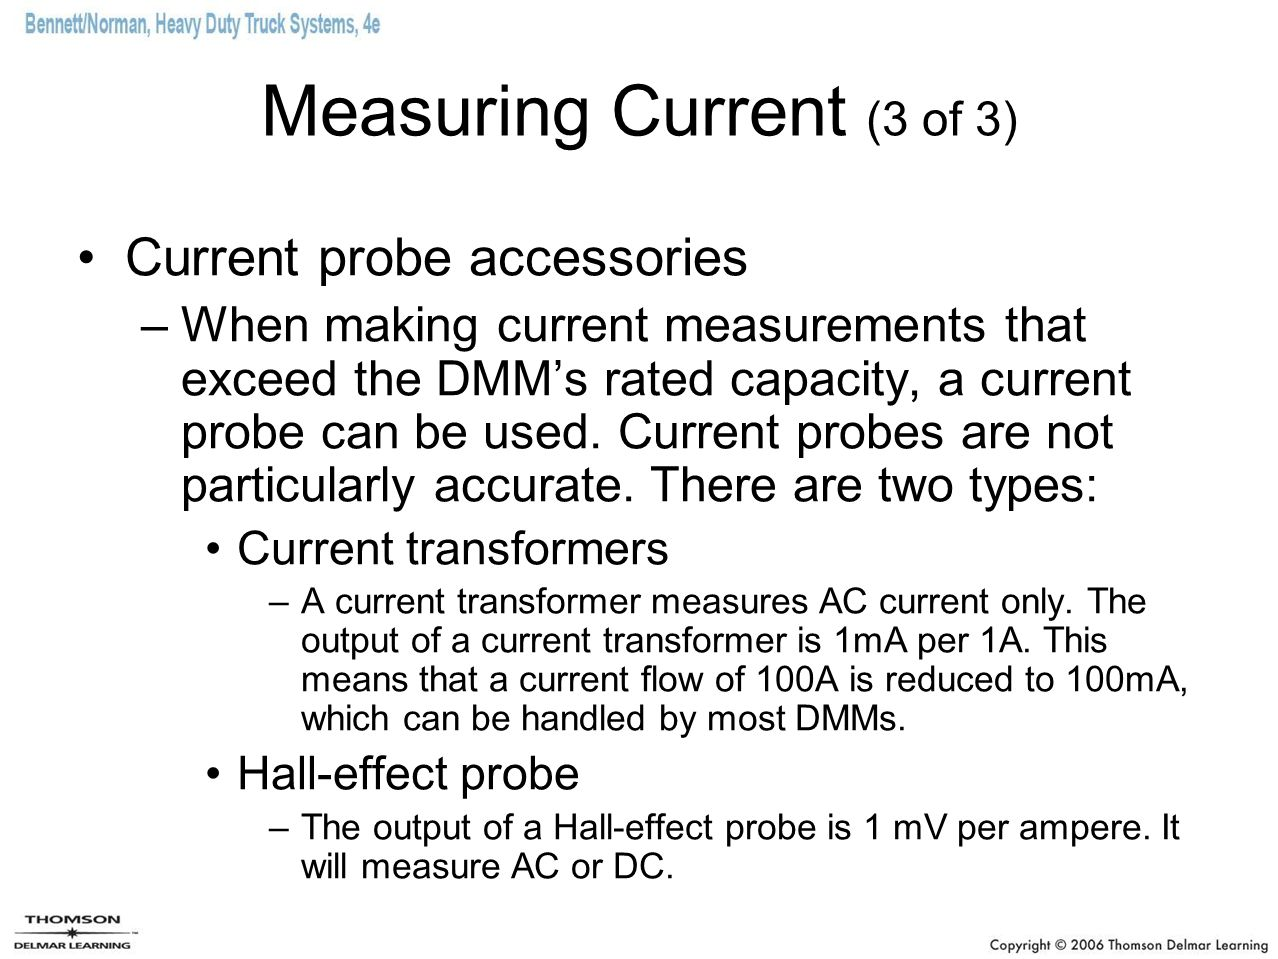 Measuring Current (3 of 3)